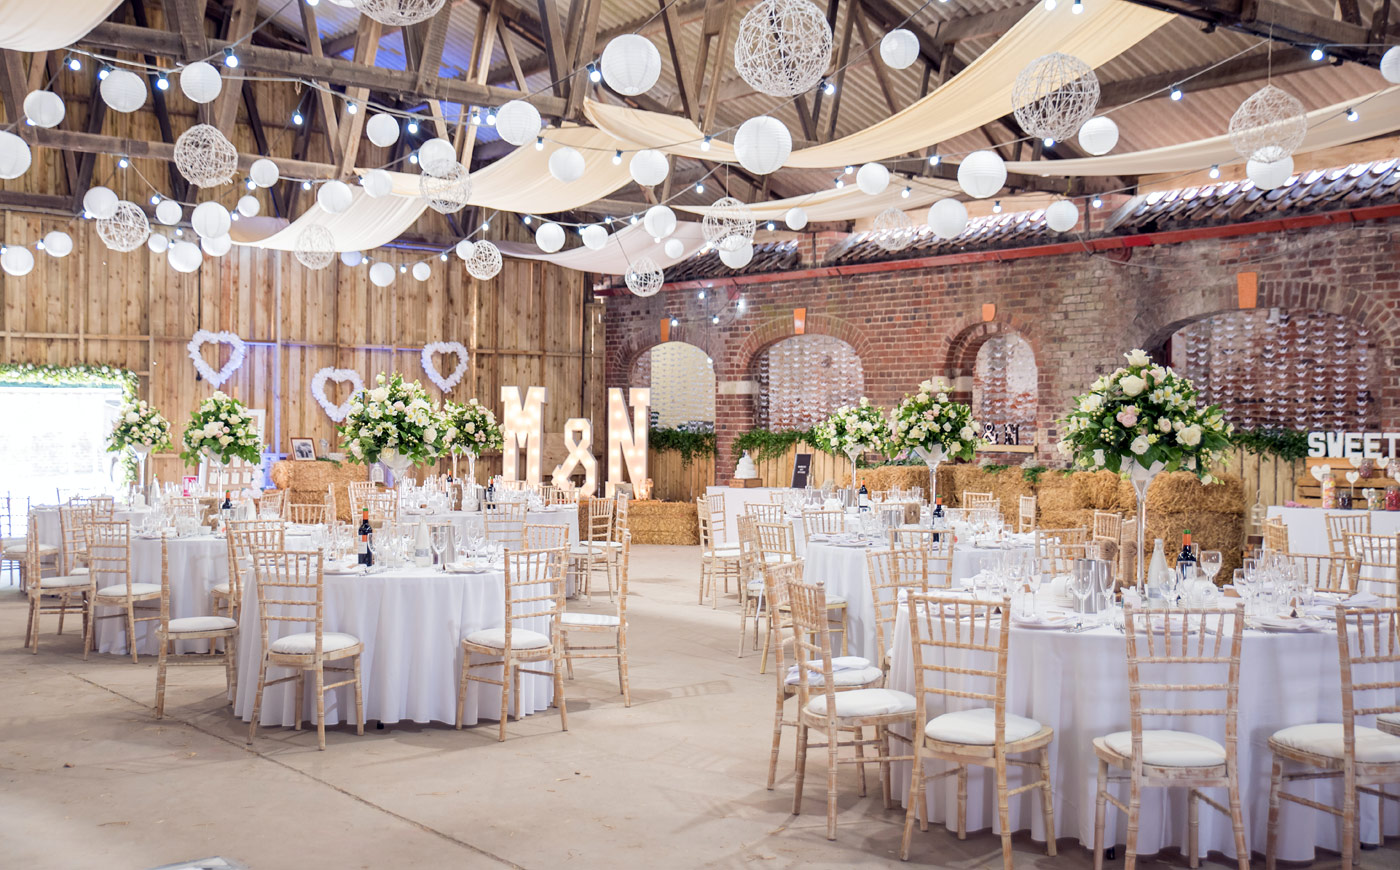 The Sykes Barn – wedding venue at Sledmere House, East Yorkshire